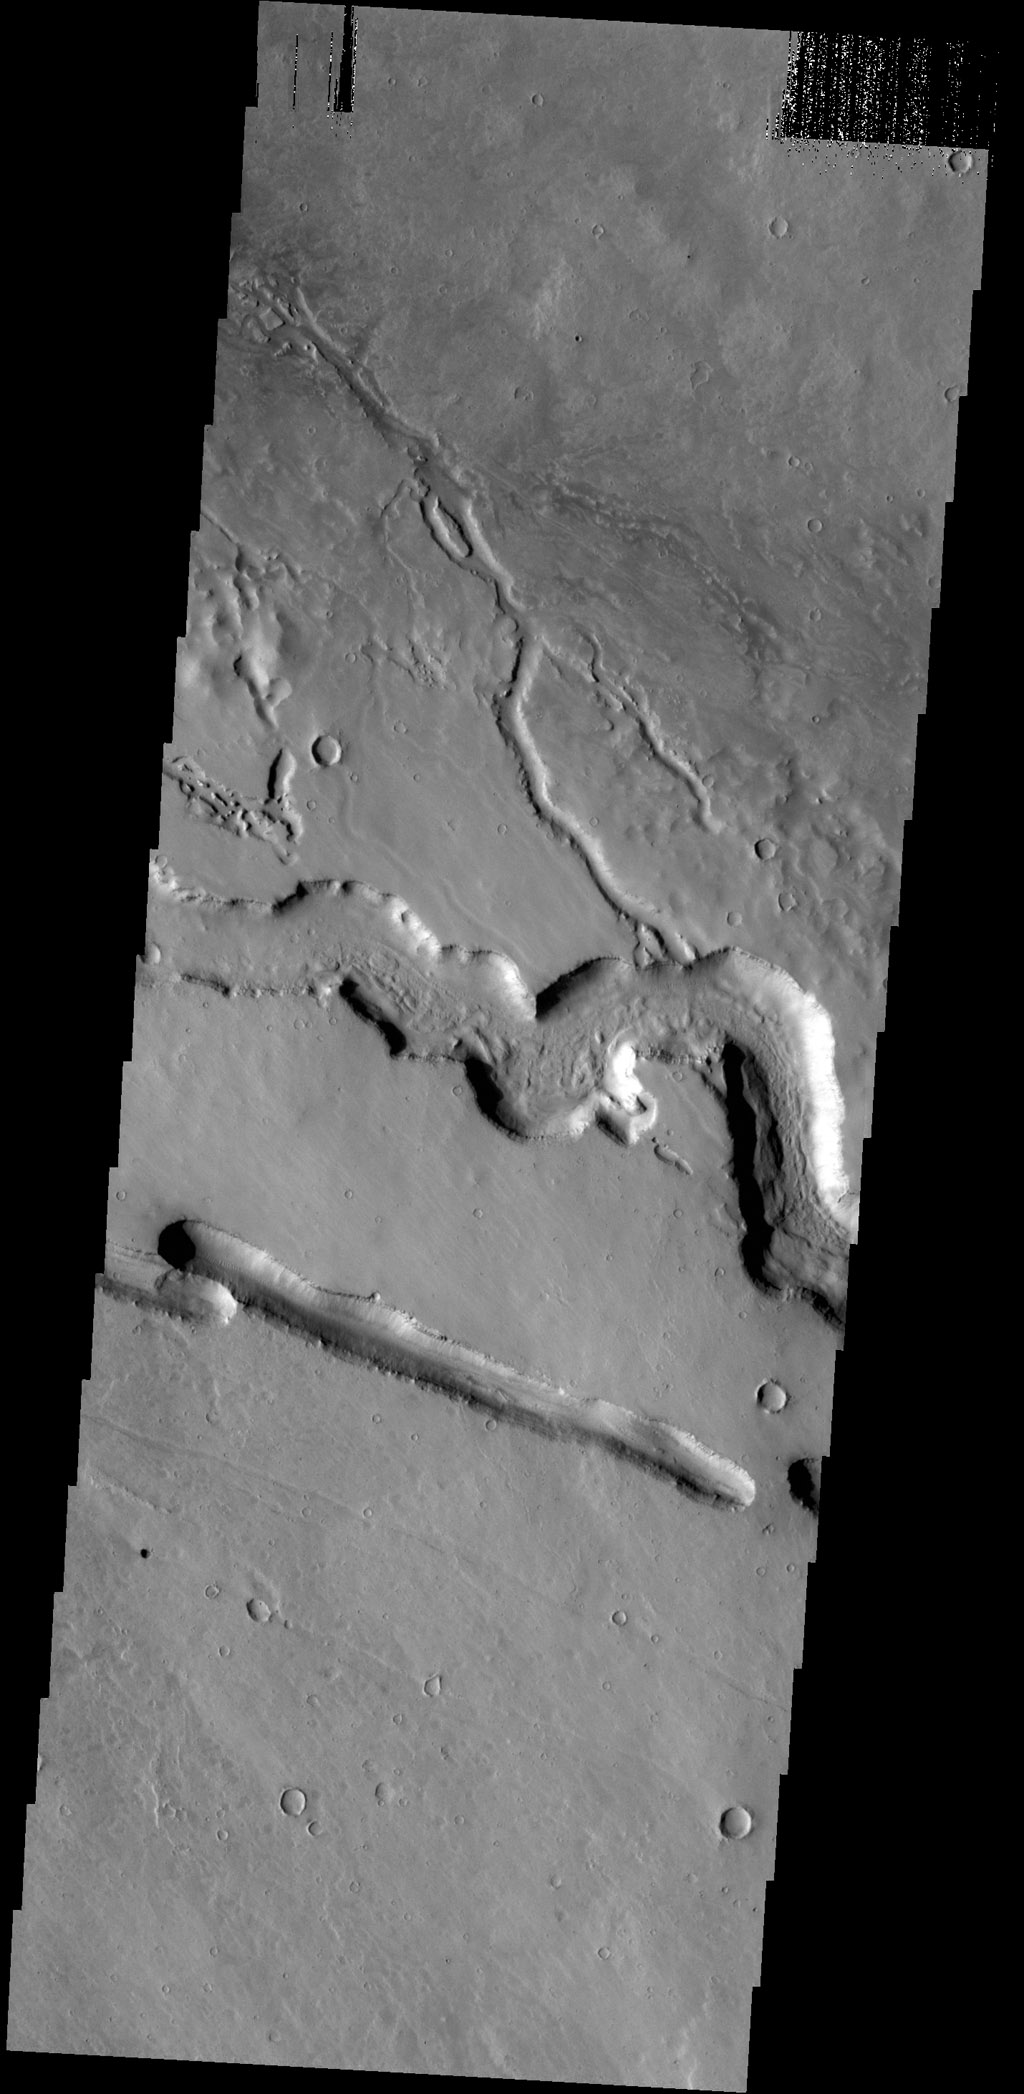 The channels and linear depression in this image captured by NASA's 2001 Mars Odyssey spacecraft are located on the western margin of the Elysium Volcanic complex. The channels were created by lava flow.